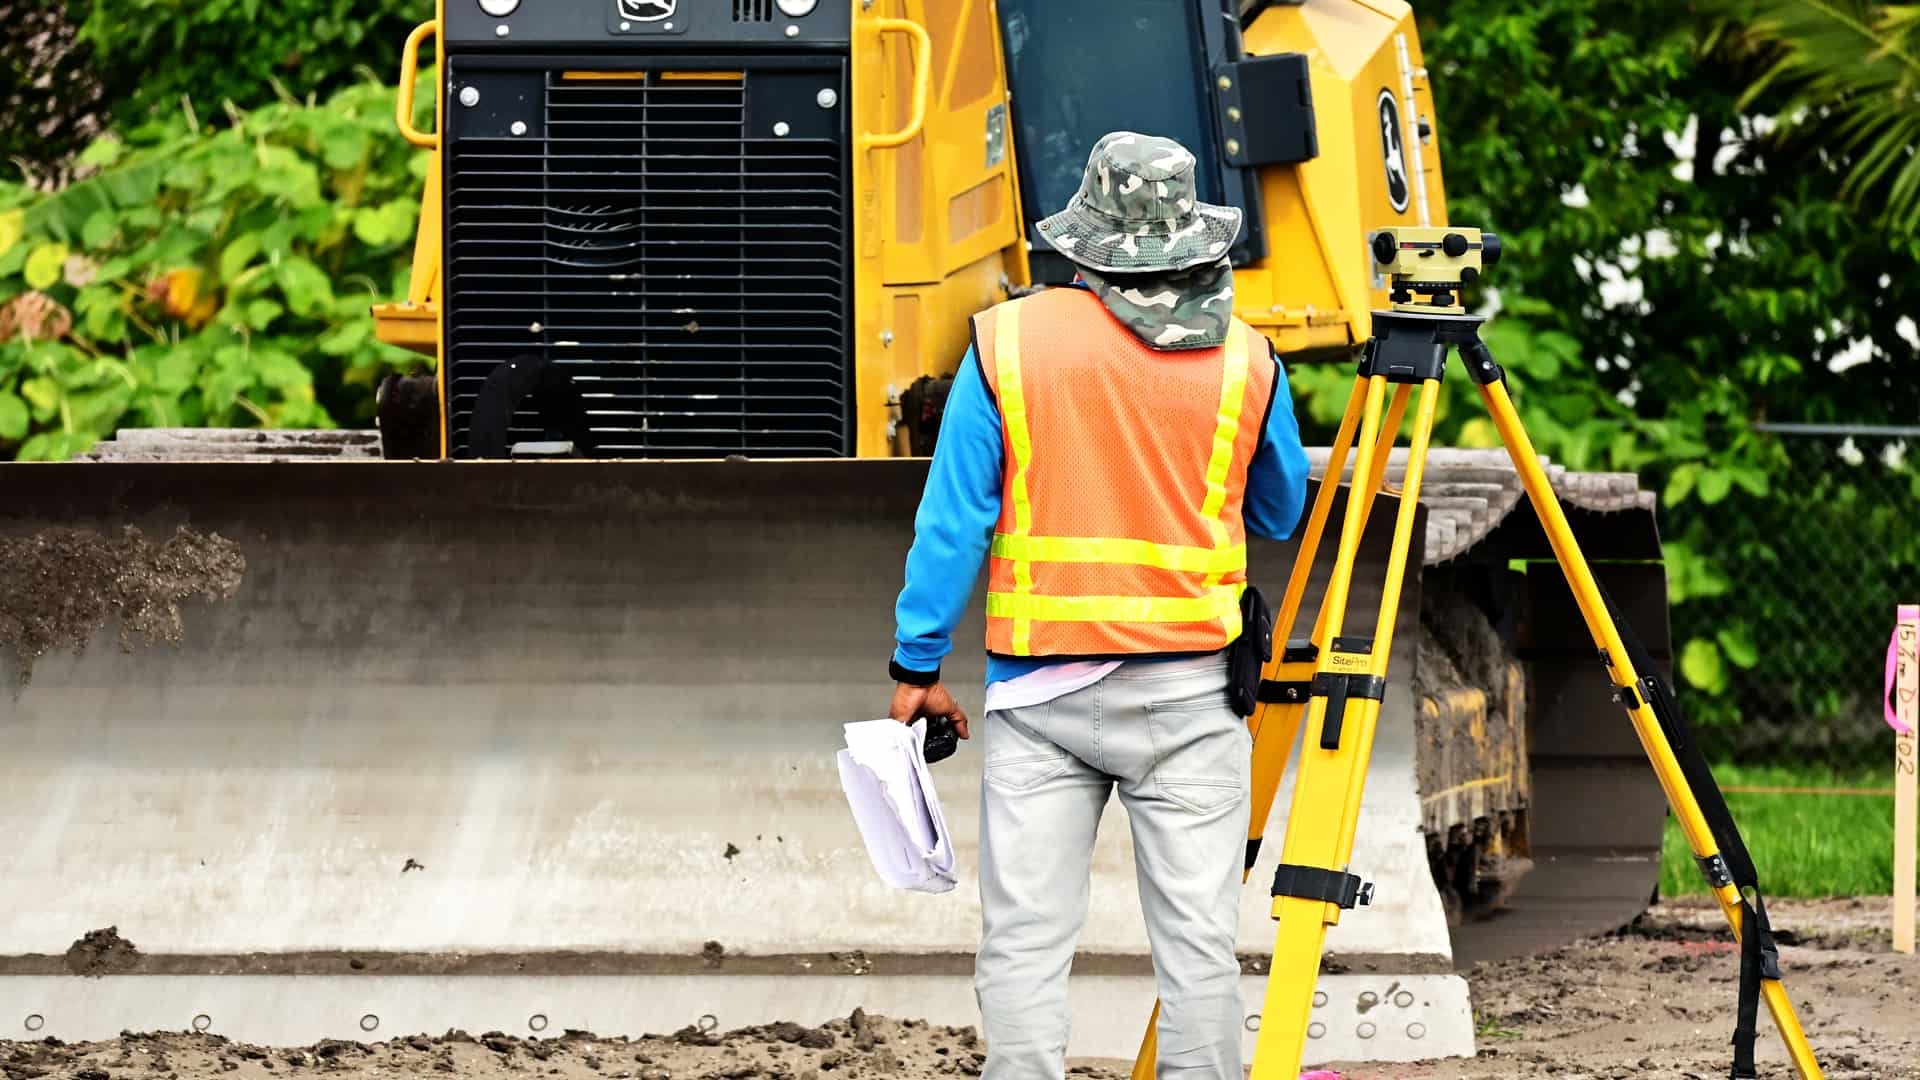 An image of a surveyor doing an ALTA survey on a piece of property with construction equipment in the background.